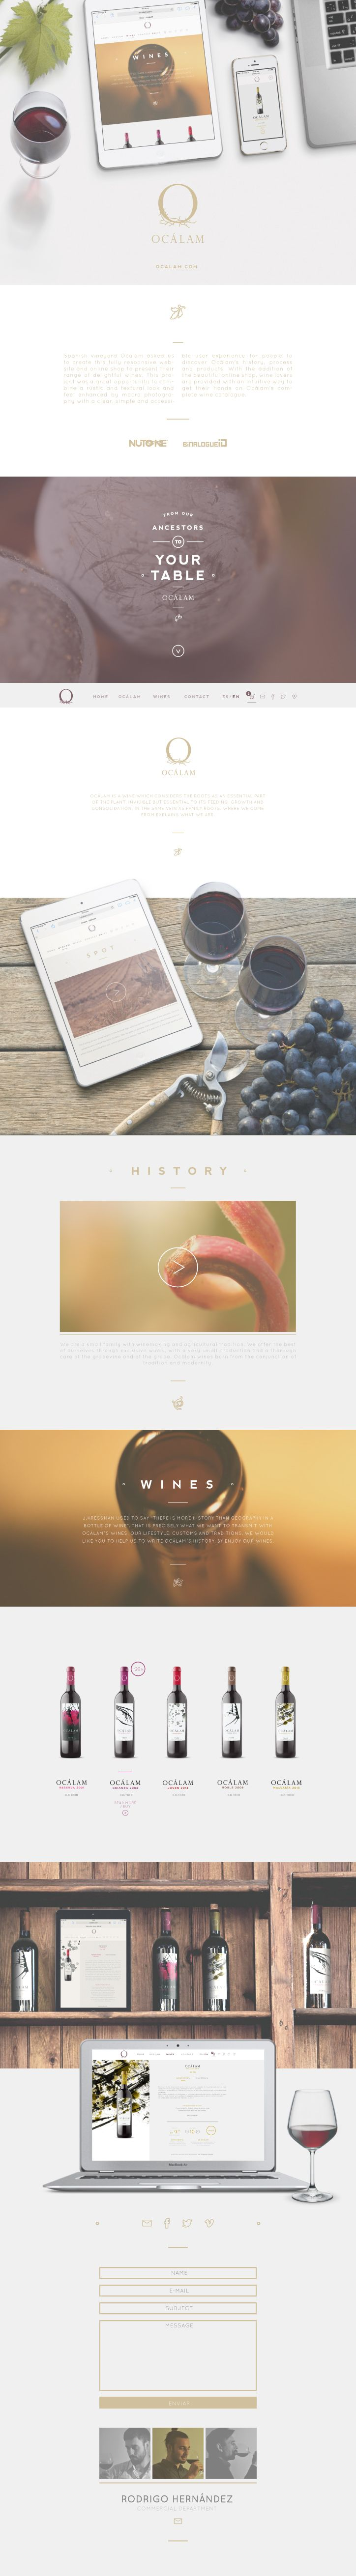 Spanish vineyard Ocalám website by nutone & binalogue